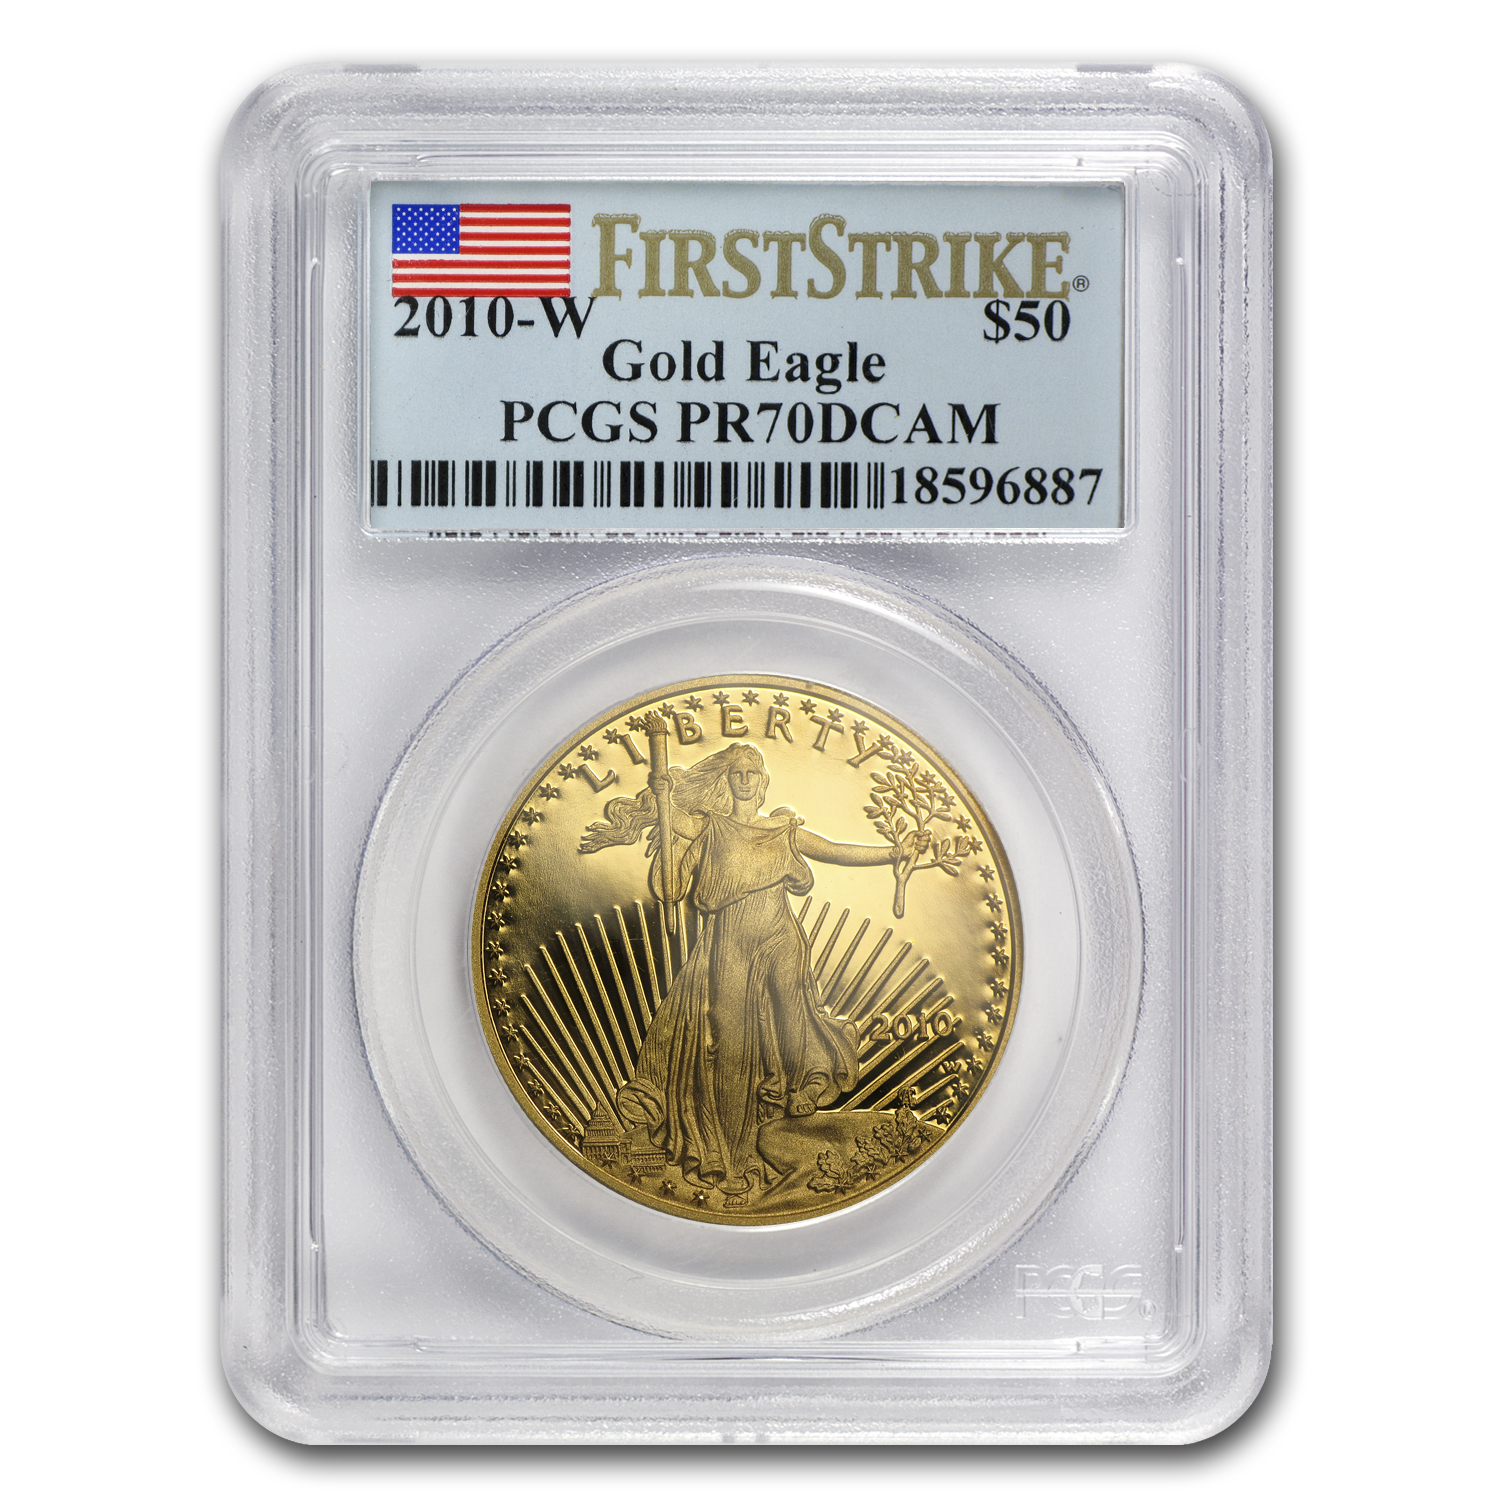 2010-W 1 oz Proof Gold American Eagle PR-70 PCGS (FS)